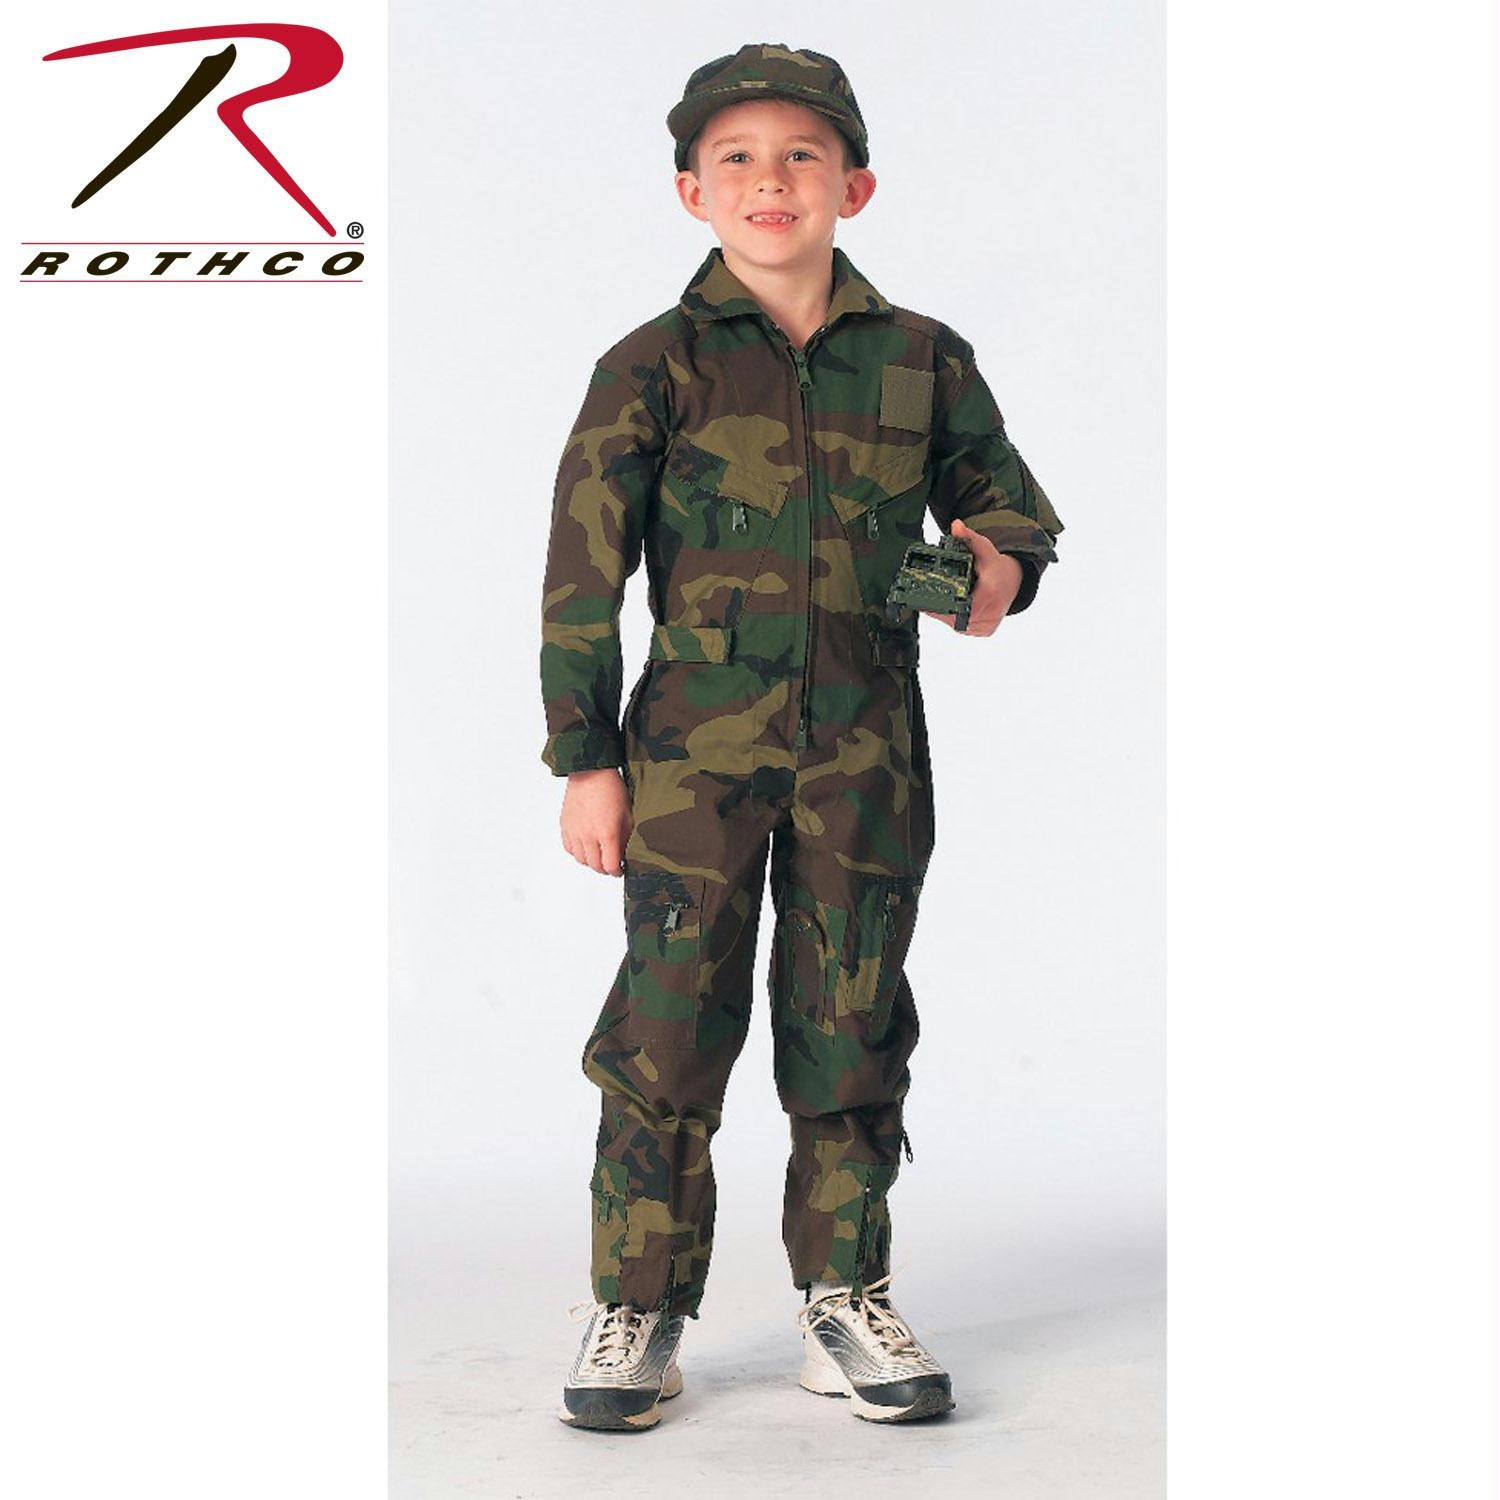 Rothco Kids Air Force Type Flightsuit - Woodland Camo / M